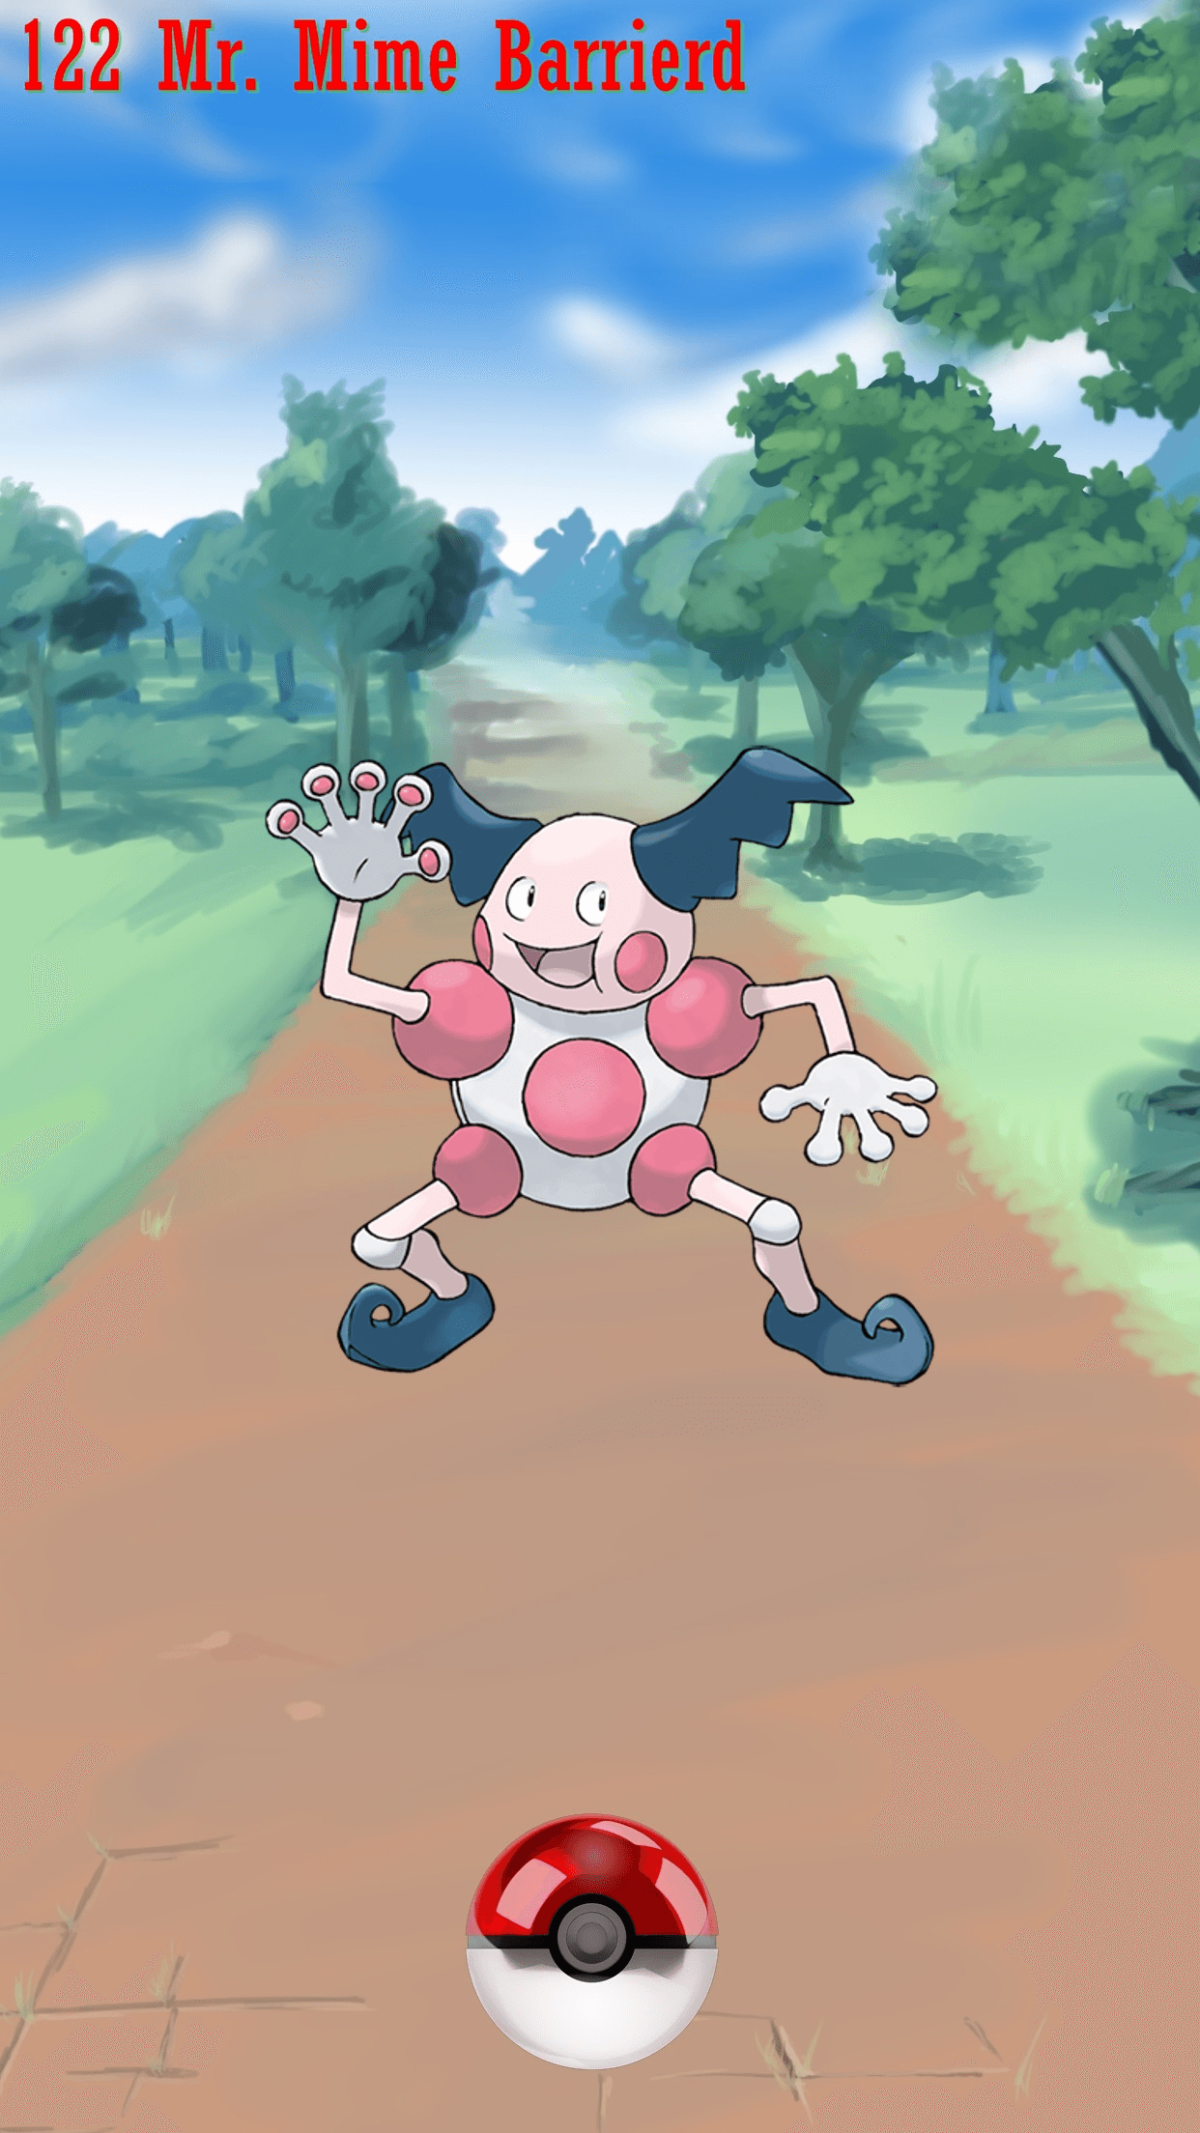 122 Street Pokeball Mr. Mime Barrierd | Wallpaper